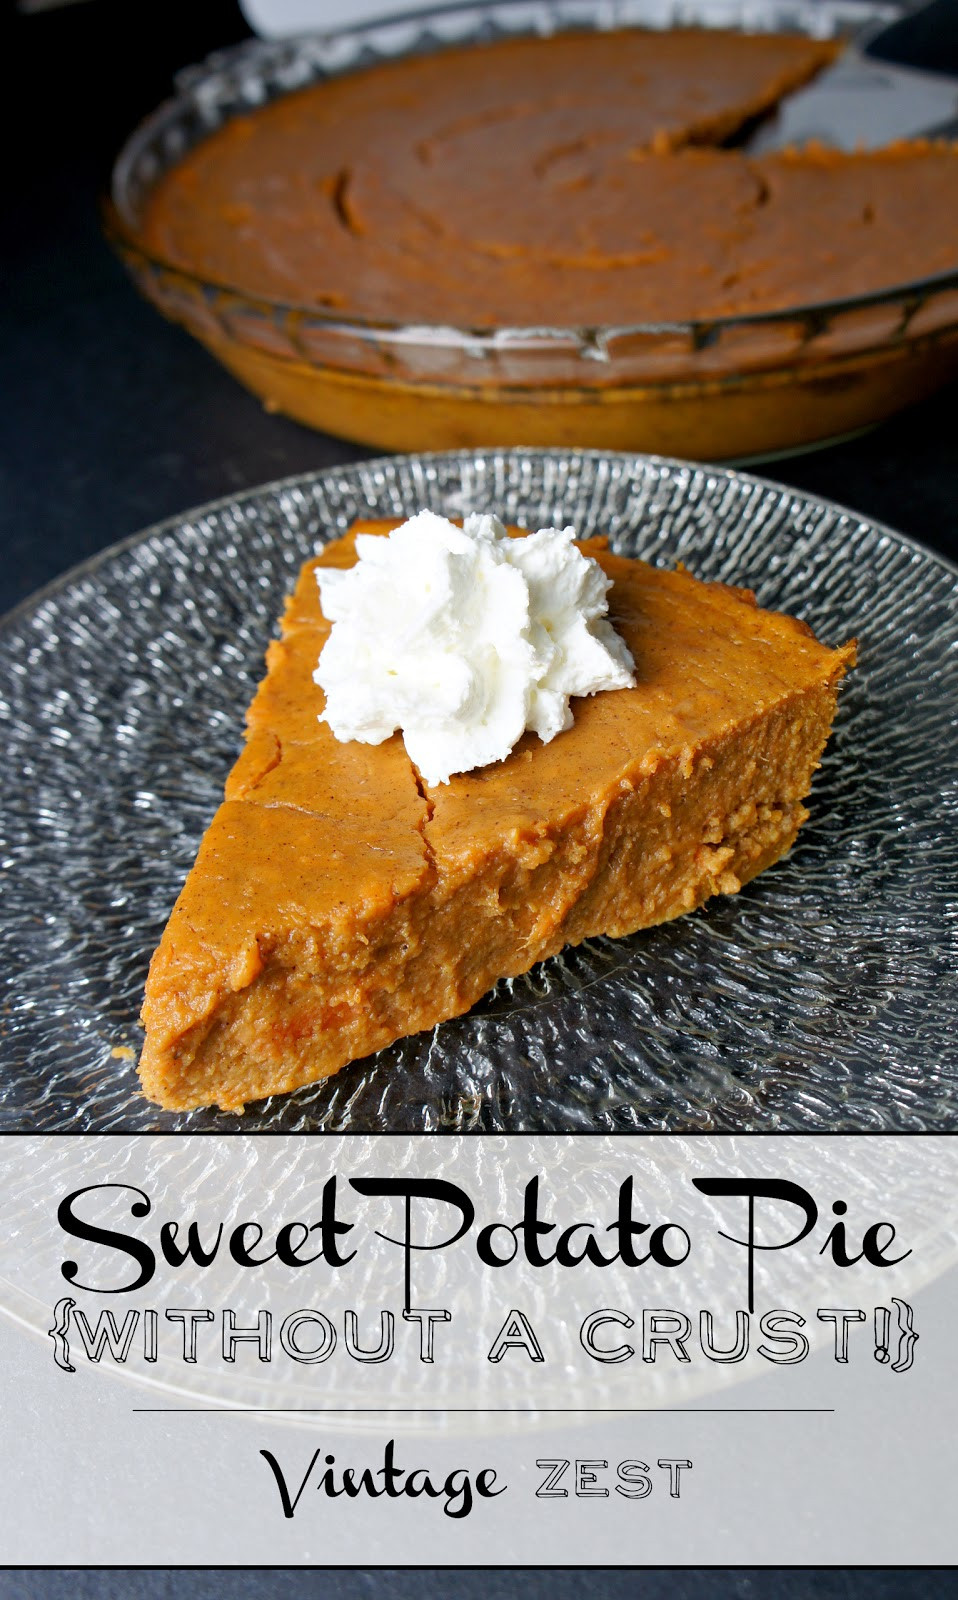 Sweet Potato Pie Crust  Easy Sweet Potato Pie without a crust Diane s Vintage